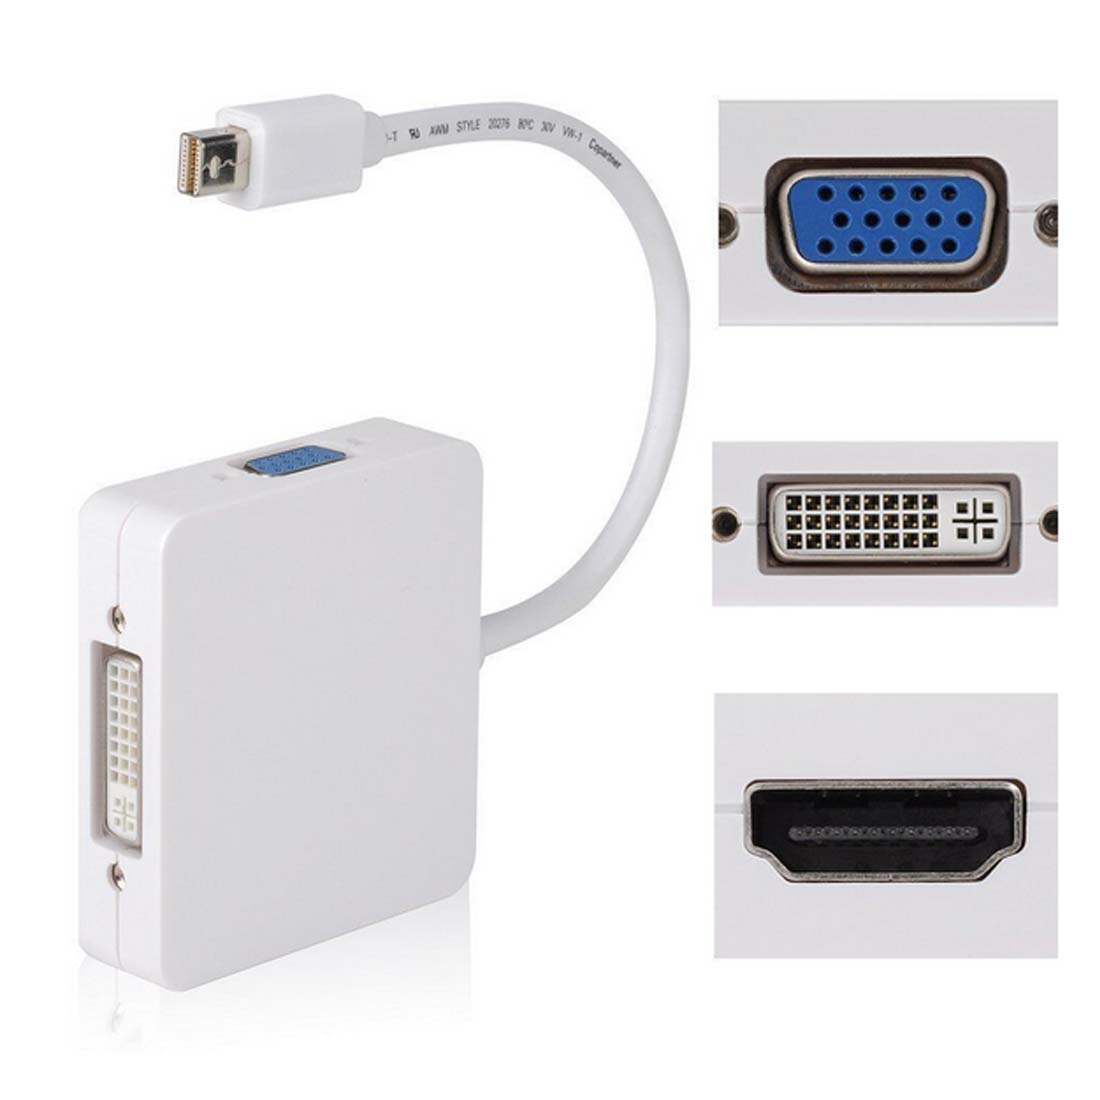 Marsnaska 3 in1 Thunderbolt Mini Displayport DP to HDMI DVI VGA Adapter Display port Cable for apple MacBook Pro Mac Book Air ultimate wd 3b with bracket oak